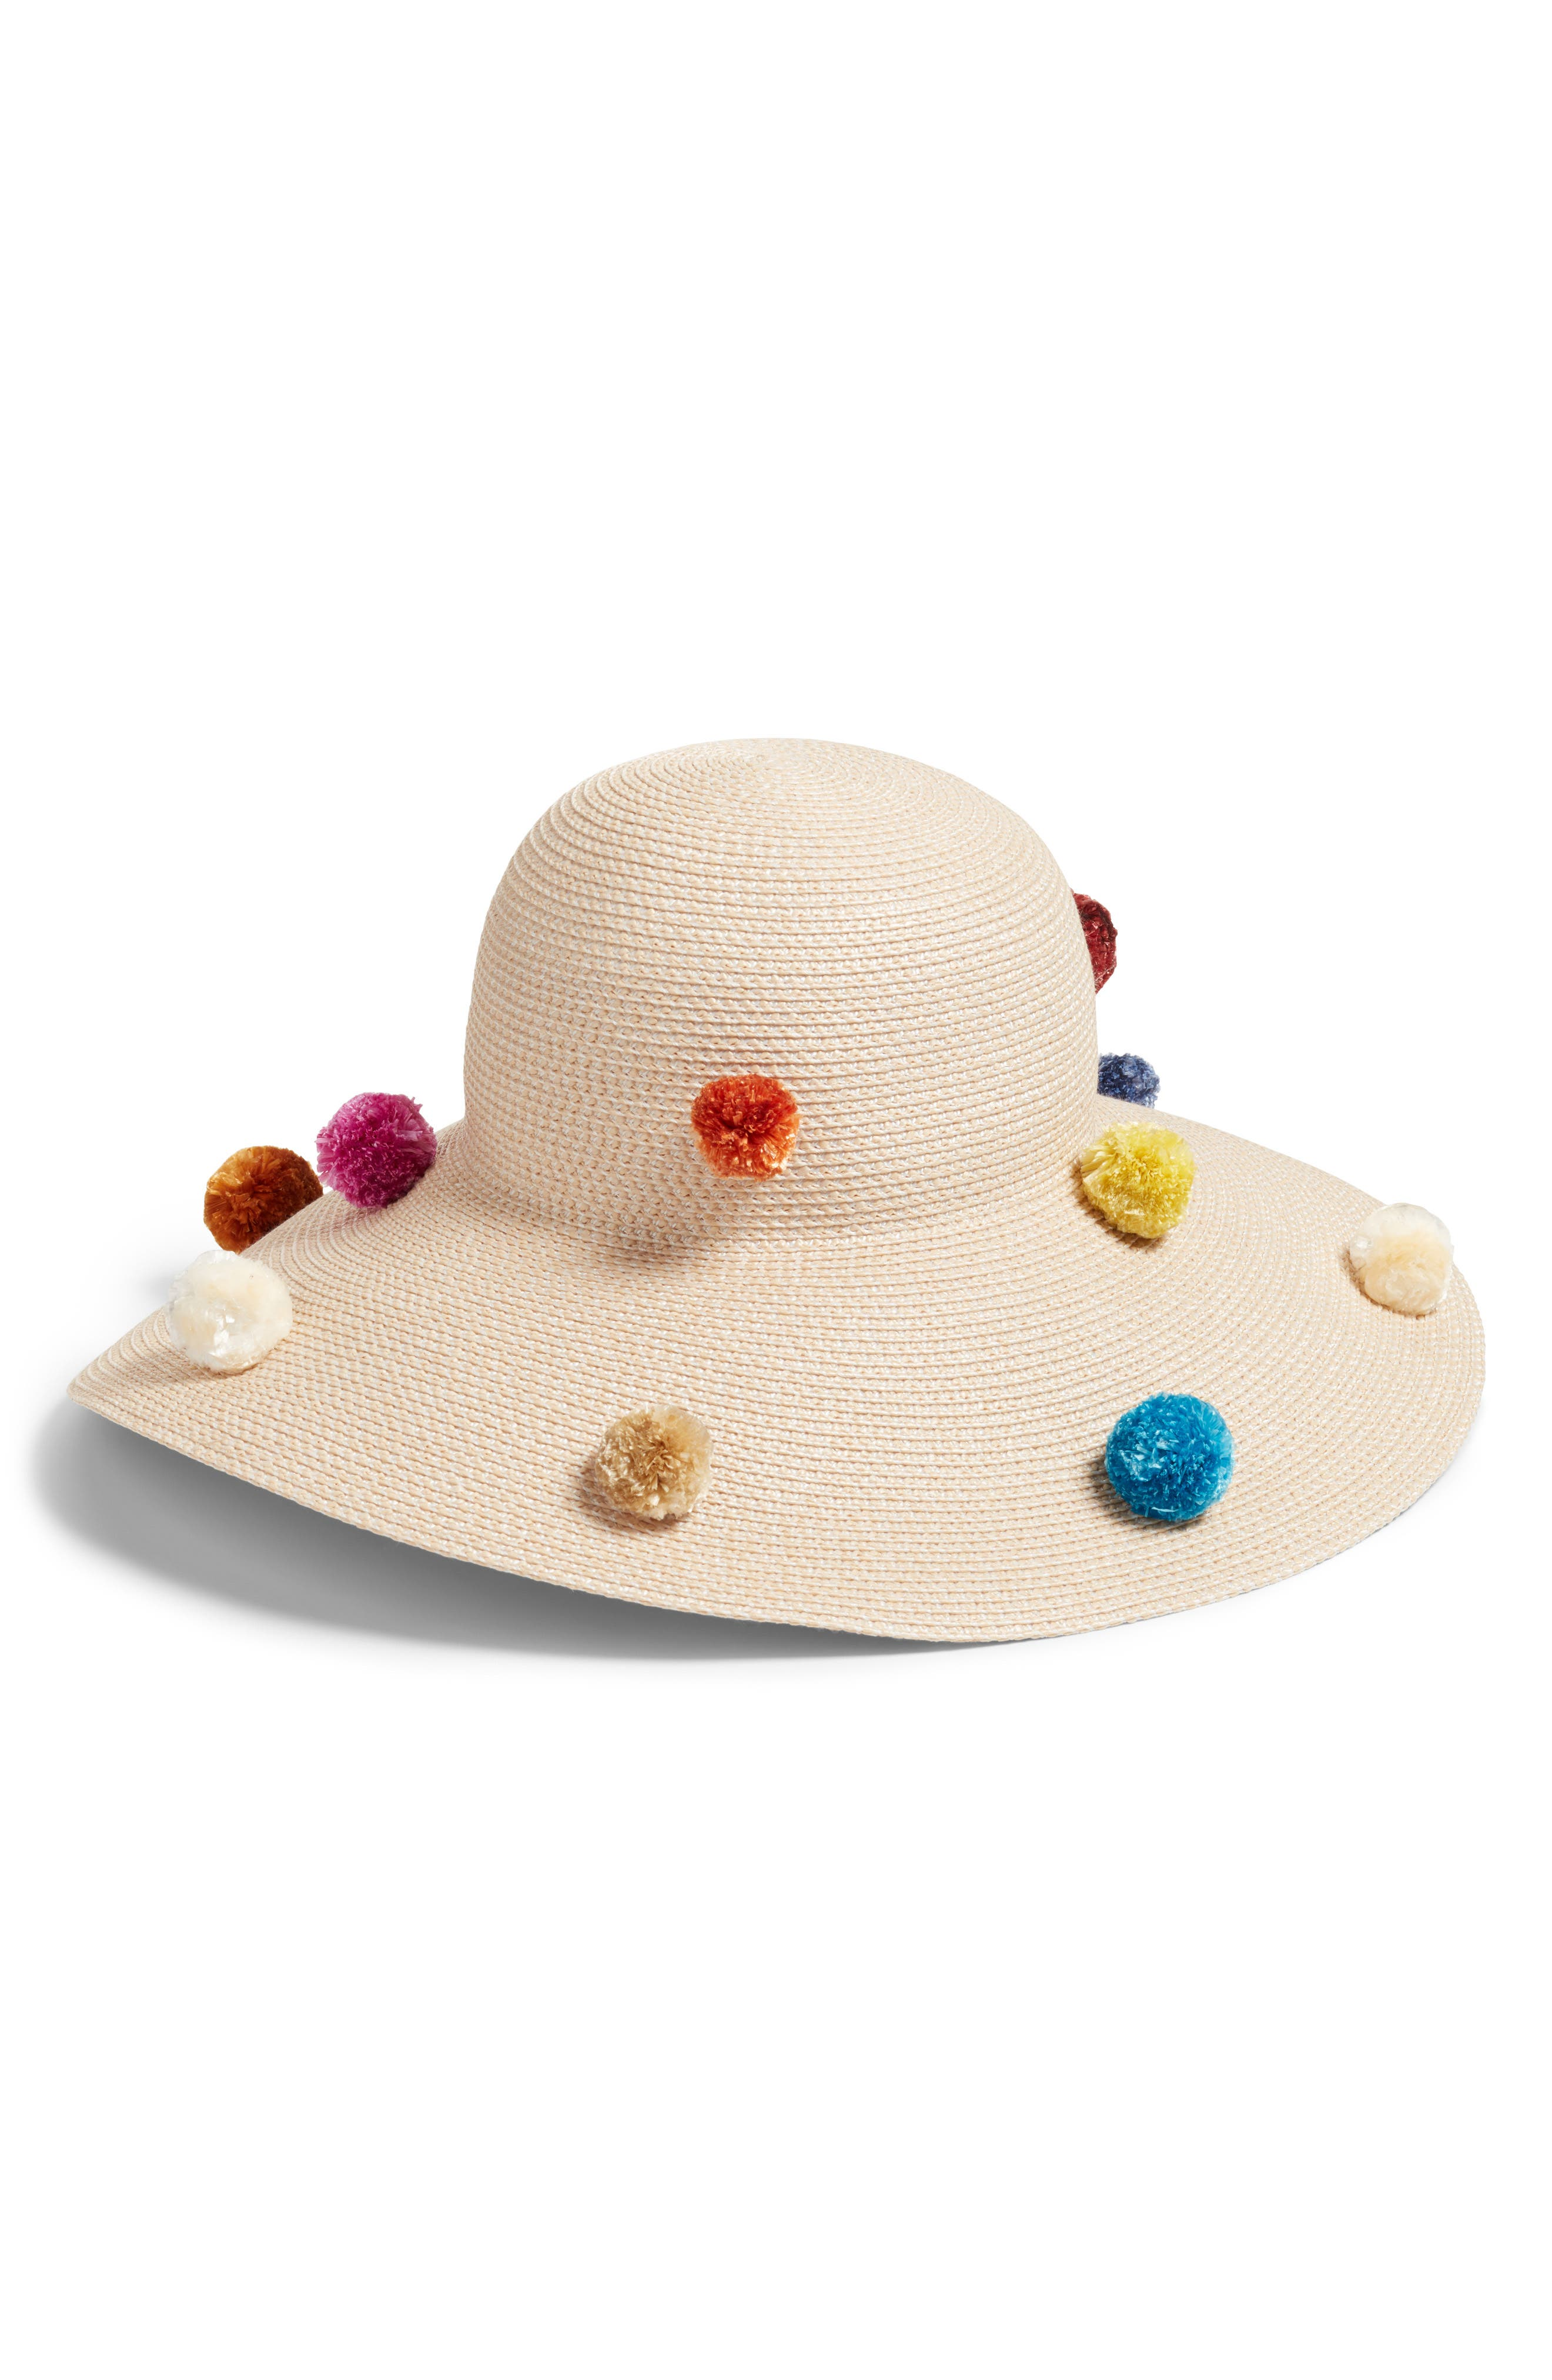 Pompom Bella Squishee<sup>®</sup> Sun Hat,                             Main thumbnail 1, color,